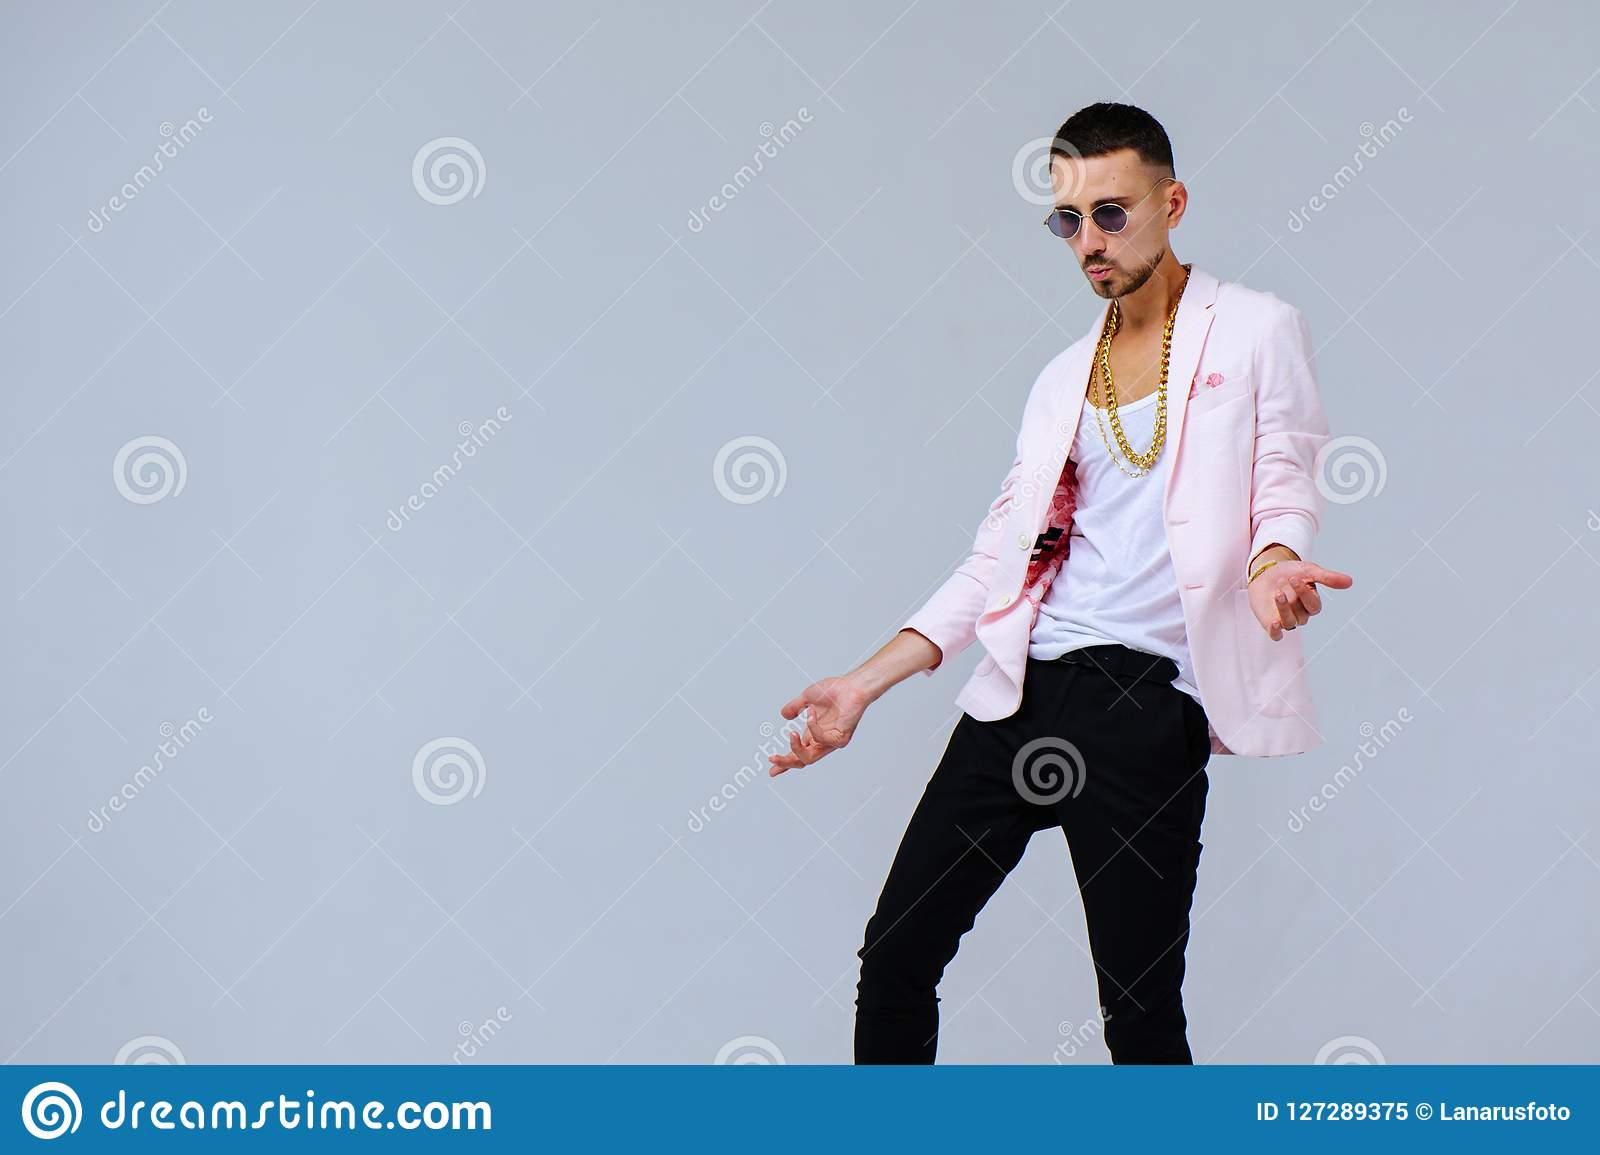 Fashionable Sophisticated Man In A Pink Jacket And Black Trousers